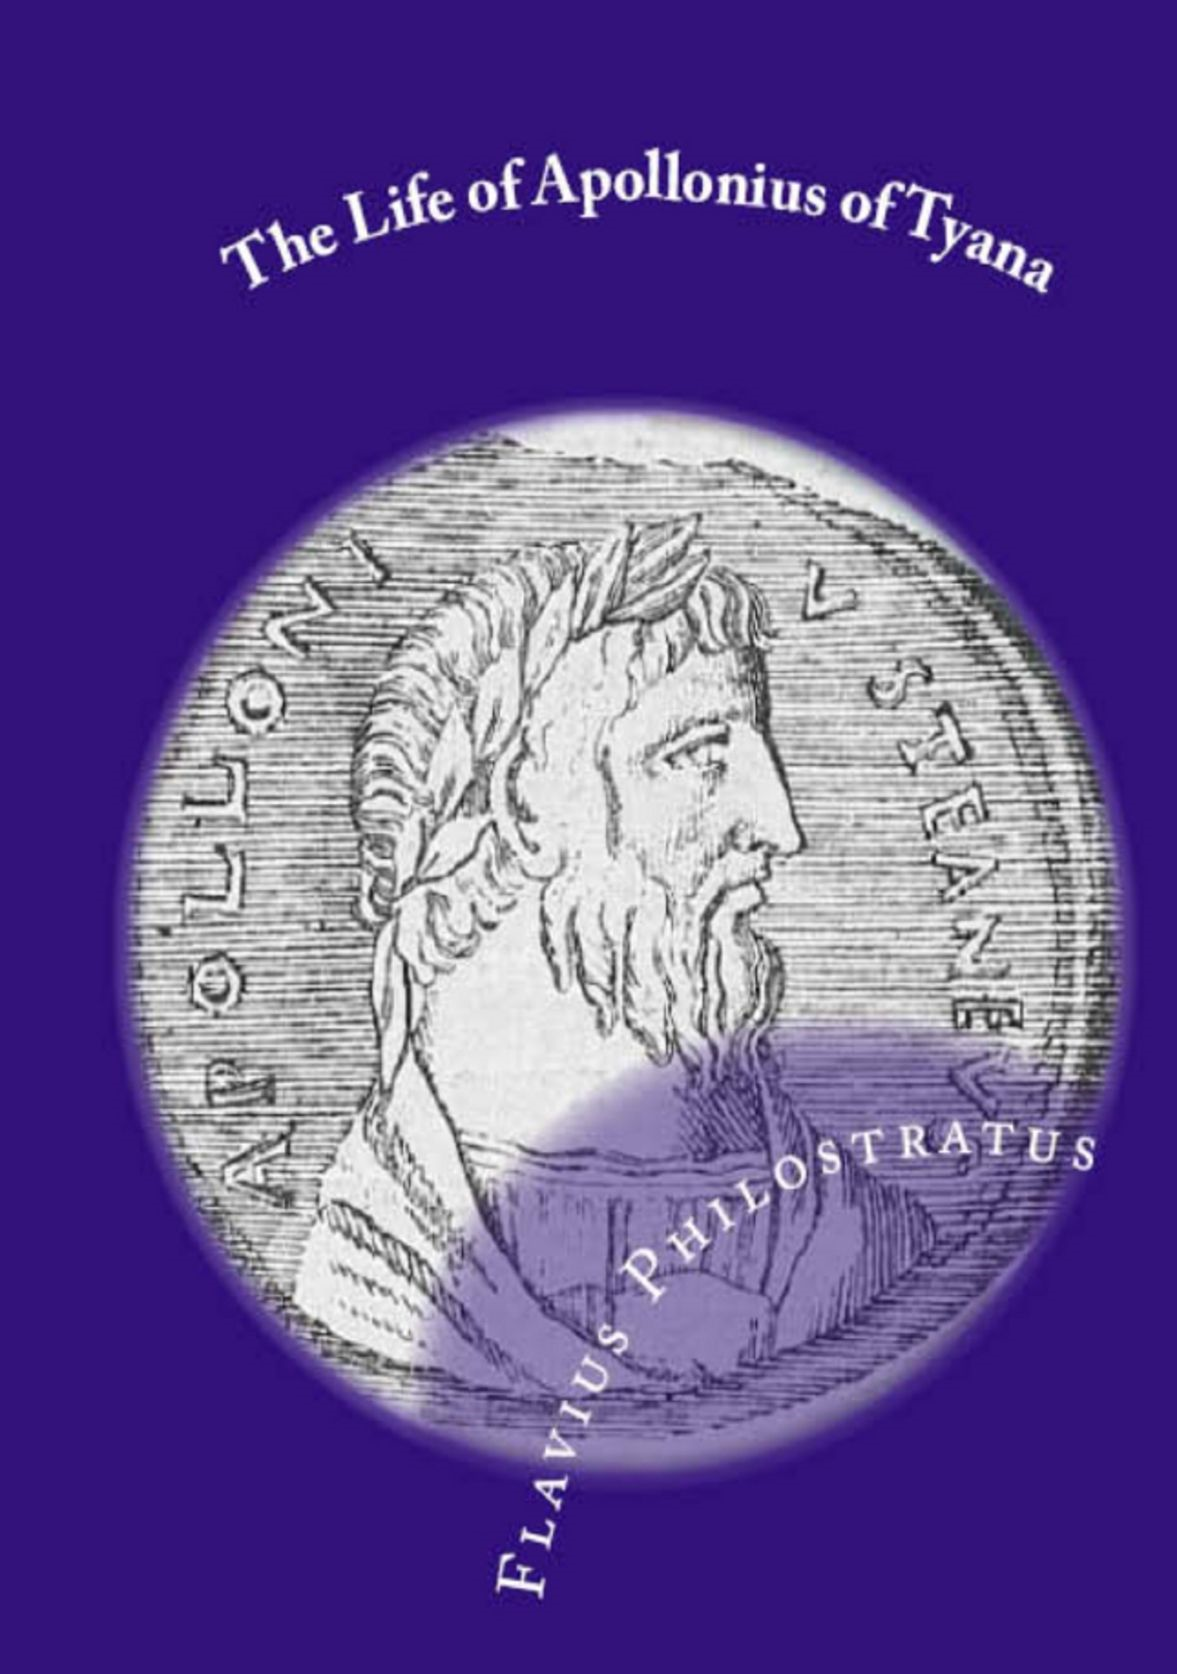 The Life Of Apollonius Of Tyana By: F. C. Conybeare (translatror),Flavius Philostratus